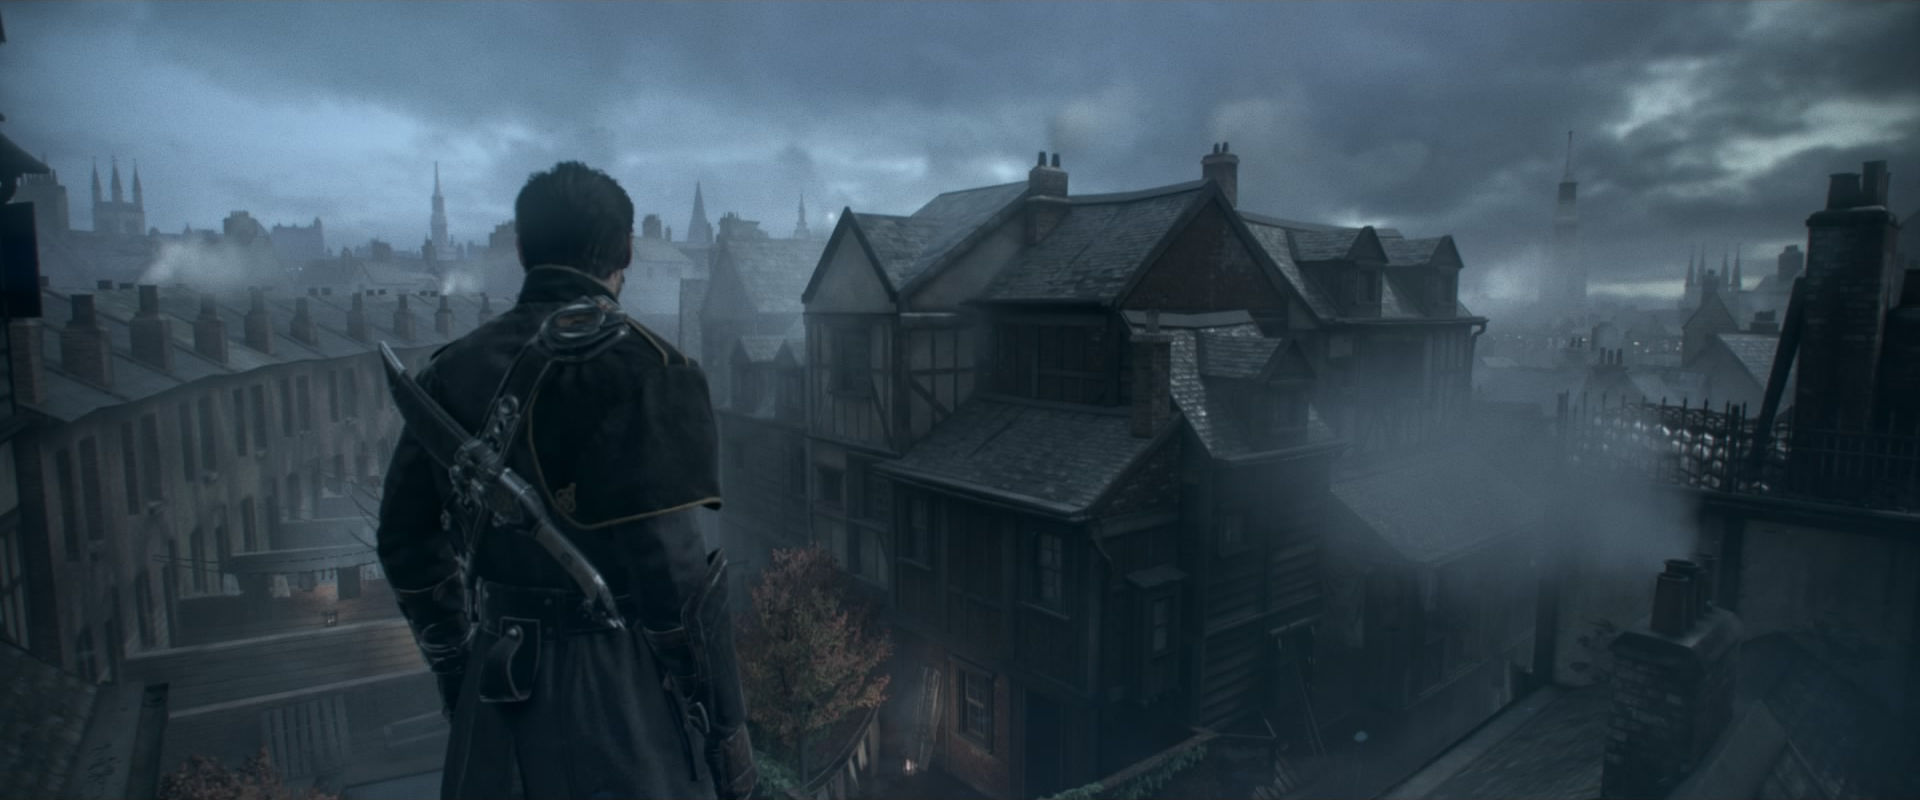 TheOrder1886 02